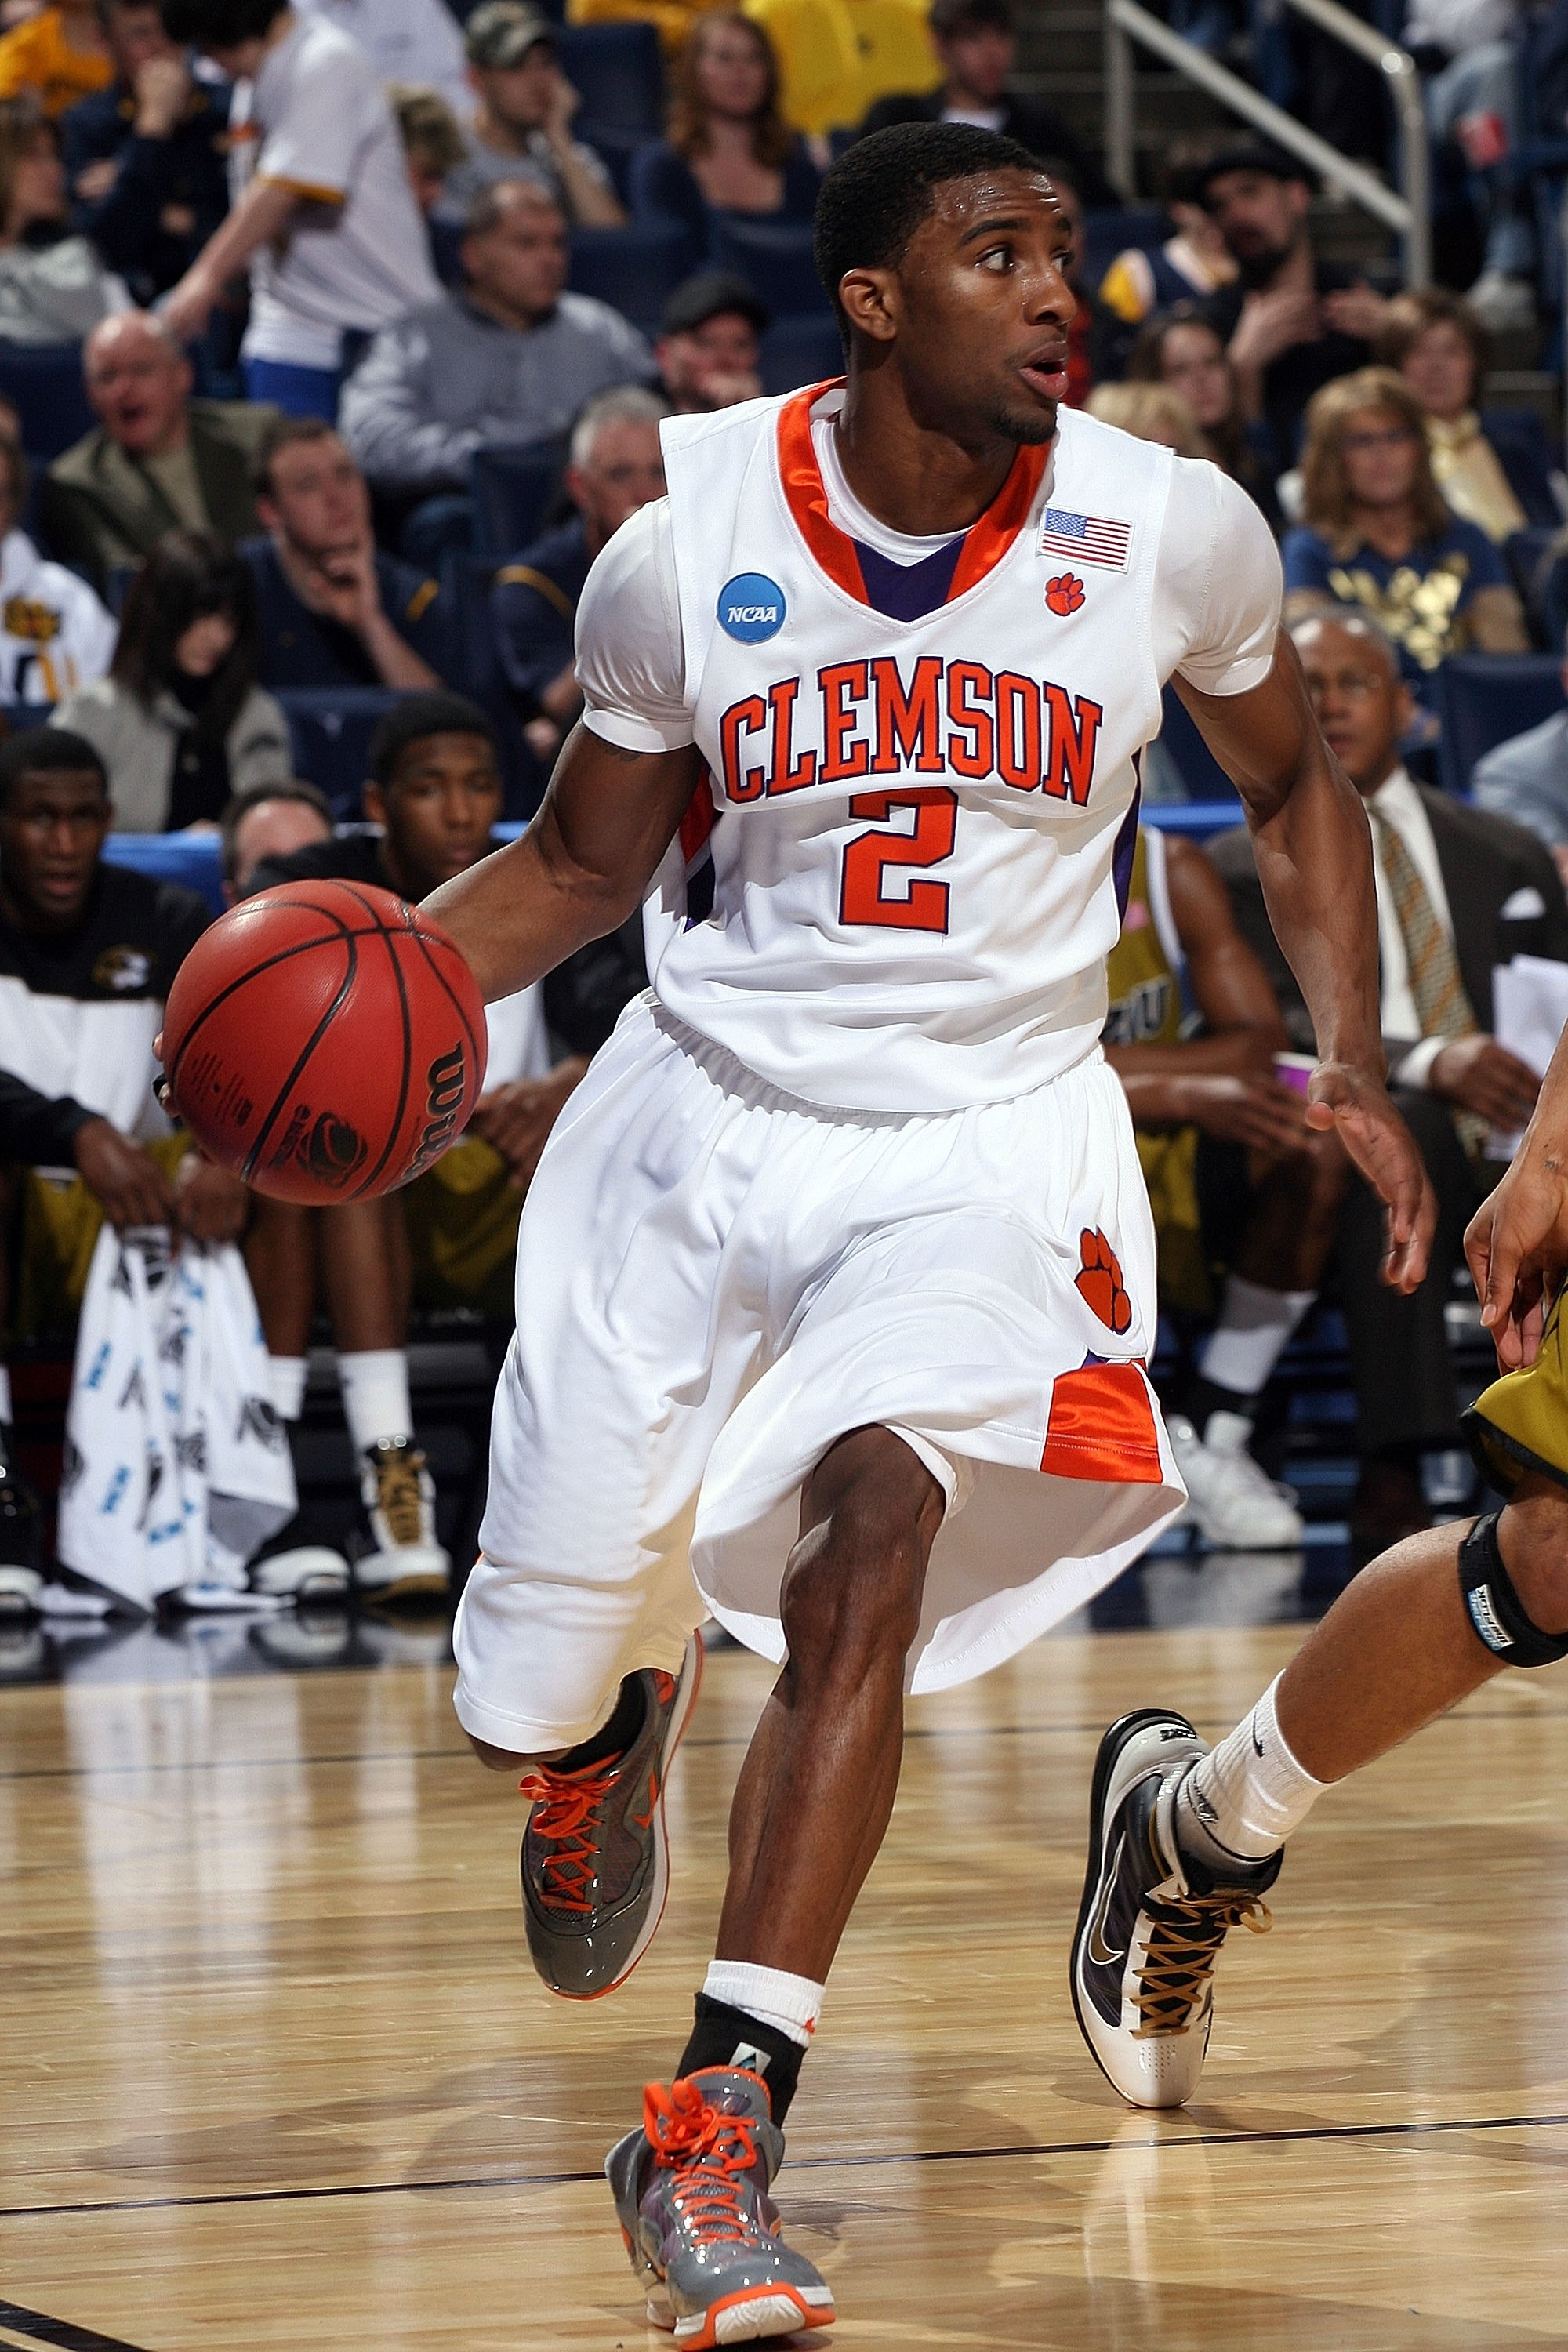 BUFFALO, NY - MARCH 19:  Demontez Stitt #2 of the Clemson Tigers handles the ball against the Missouri Tigers during the first round of the 2010 NCAA men's basketball tournament at HSBC Arena on March 19, 2010 in Buffalo, New York.  (Photo by Rick Stewart